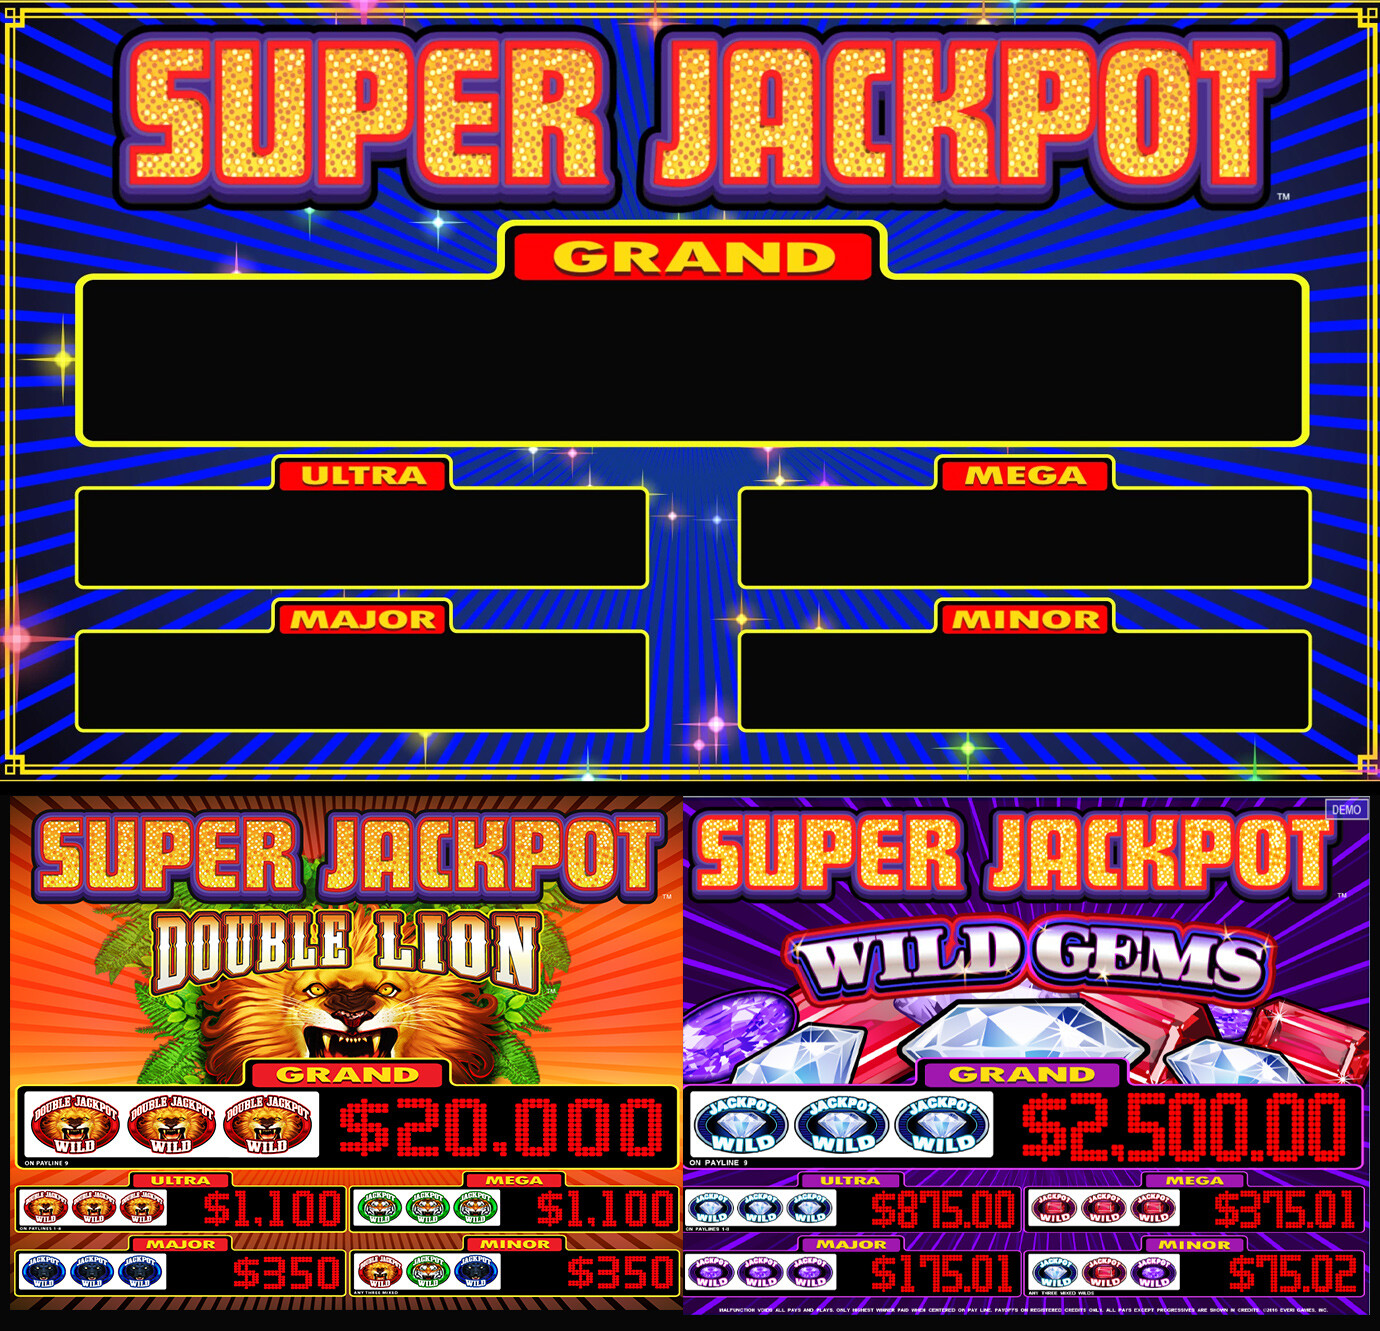 Top screen (mech game), attract still